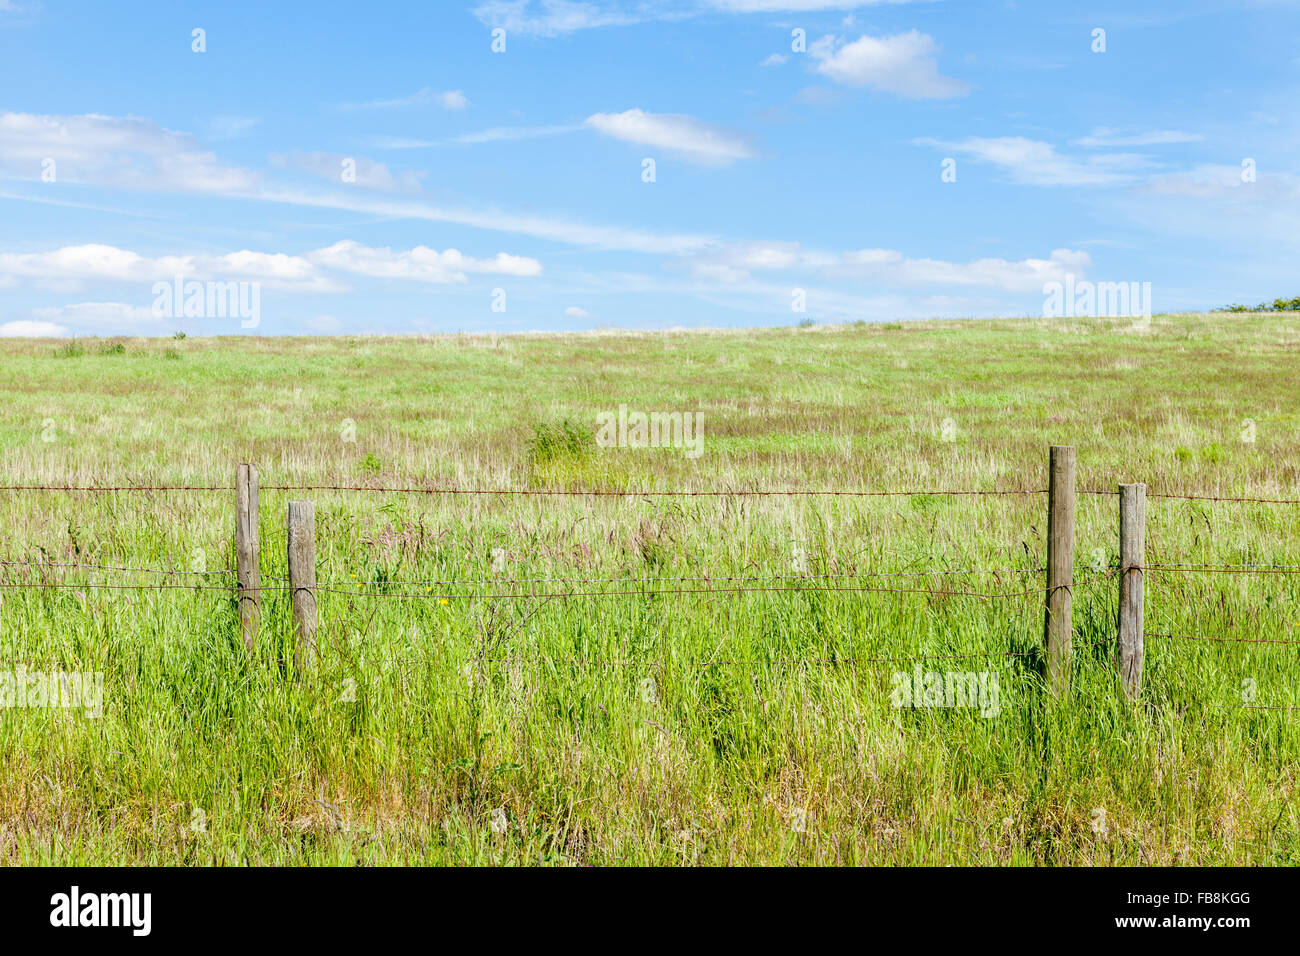 Field fenced off with a rusty barbed wire fence on wooden posts - Stock Image